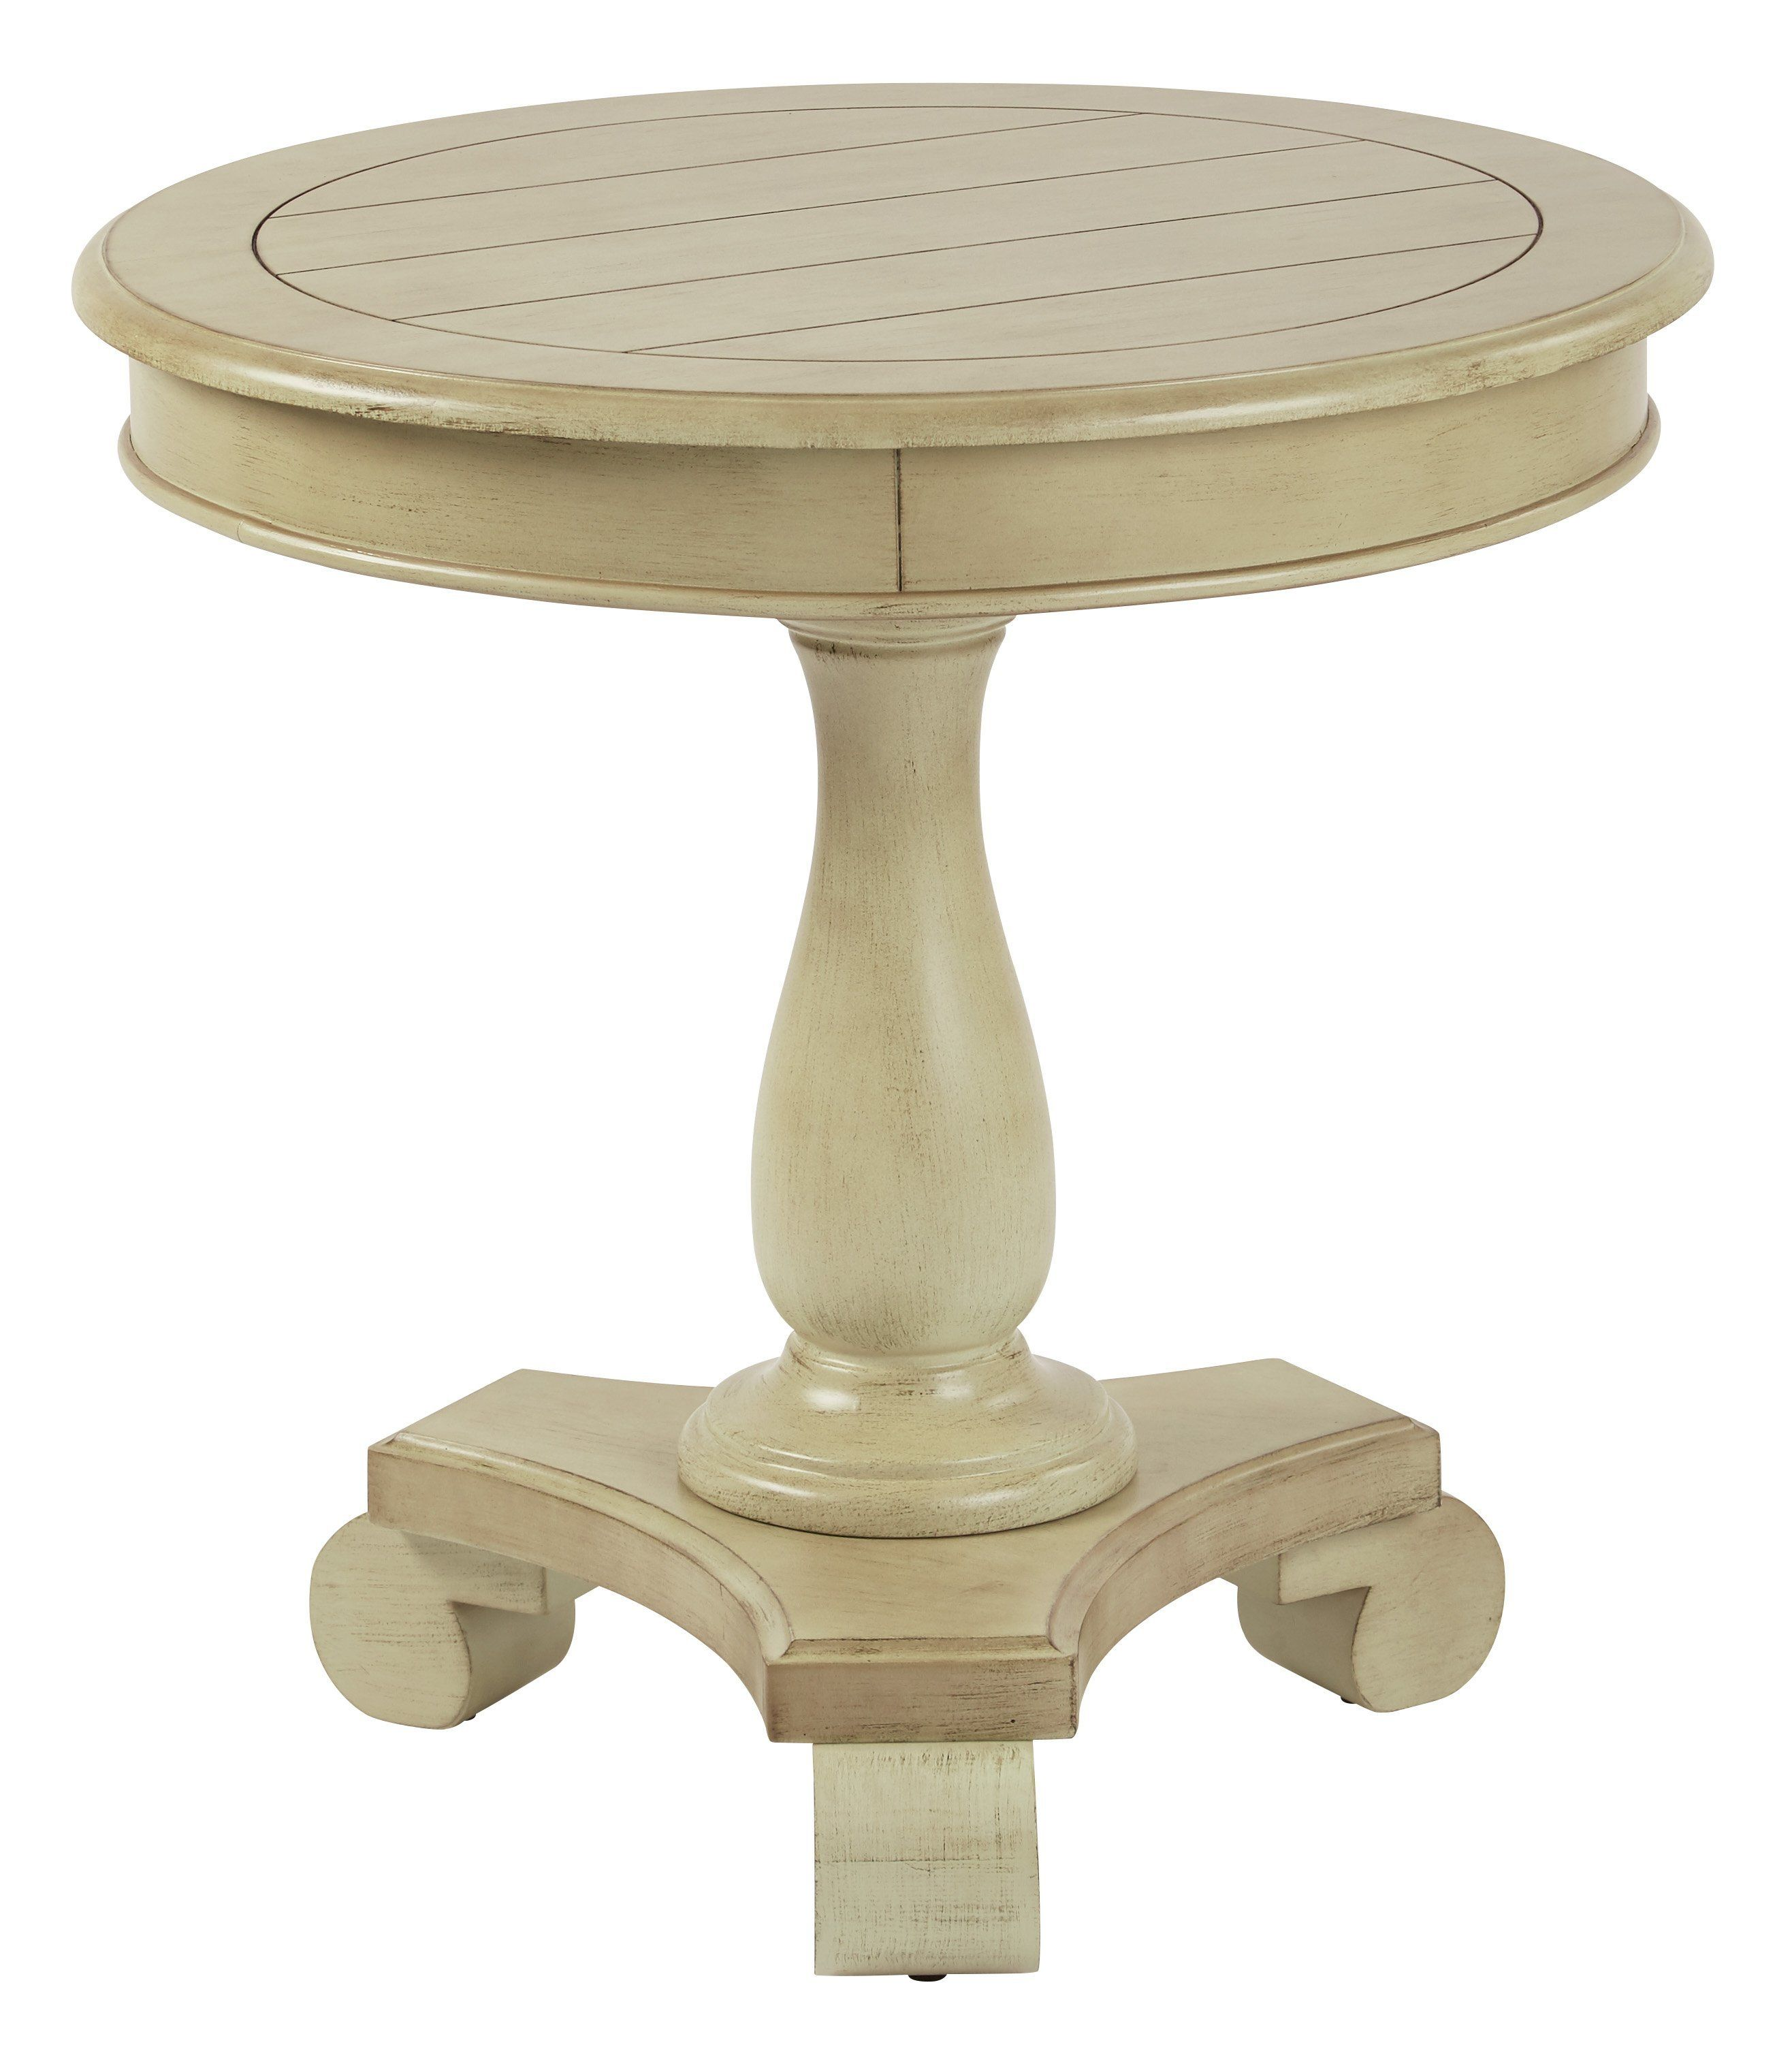 office star antique celedon avalon round accent table products with power barn style kitchen brushed brass coffee glass nesting tables room essentials patio tablecloth outdoor